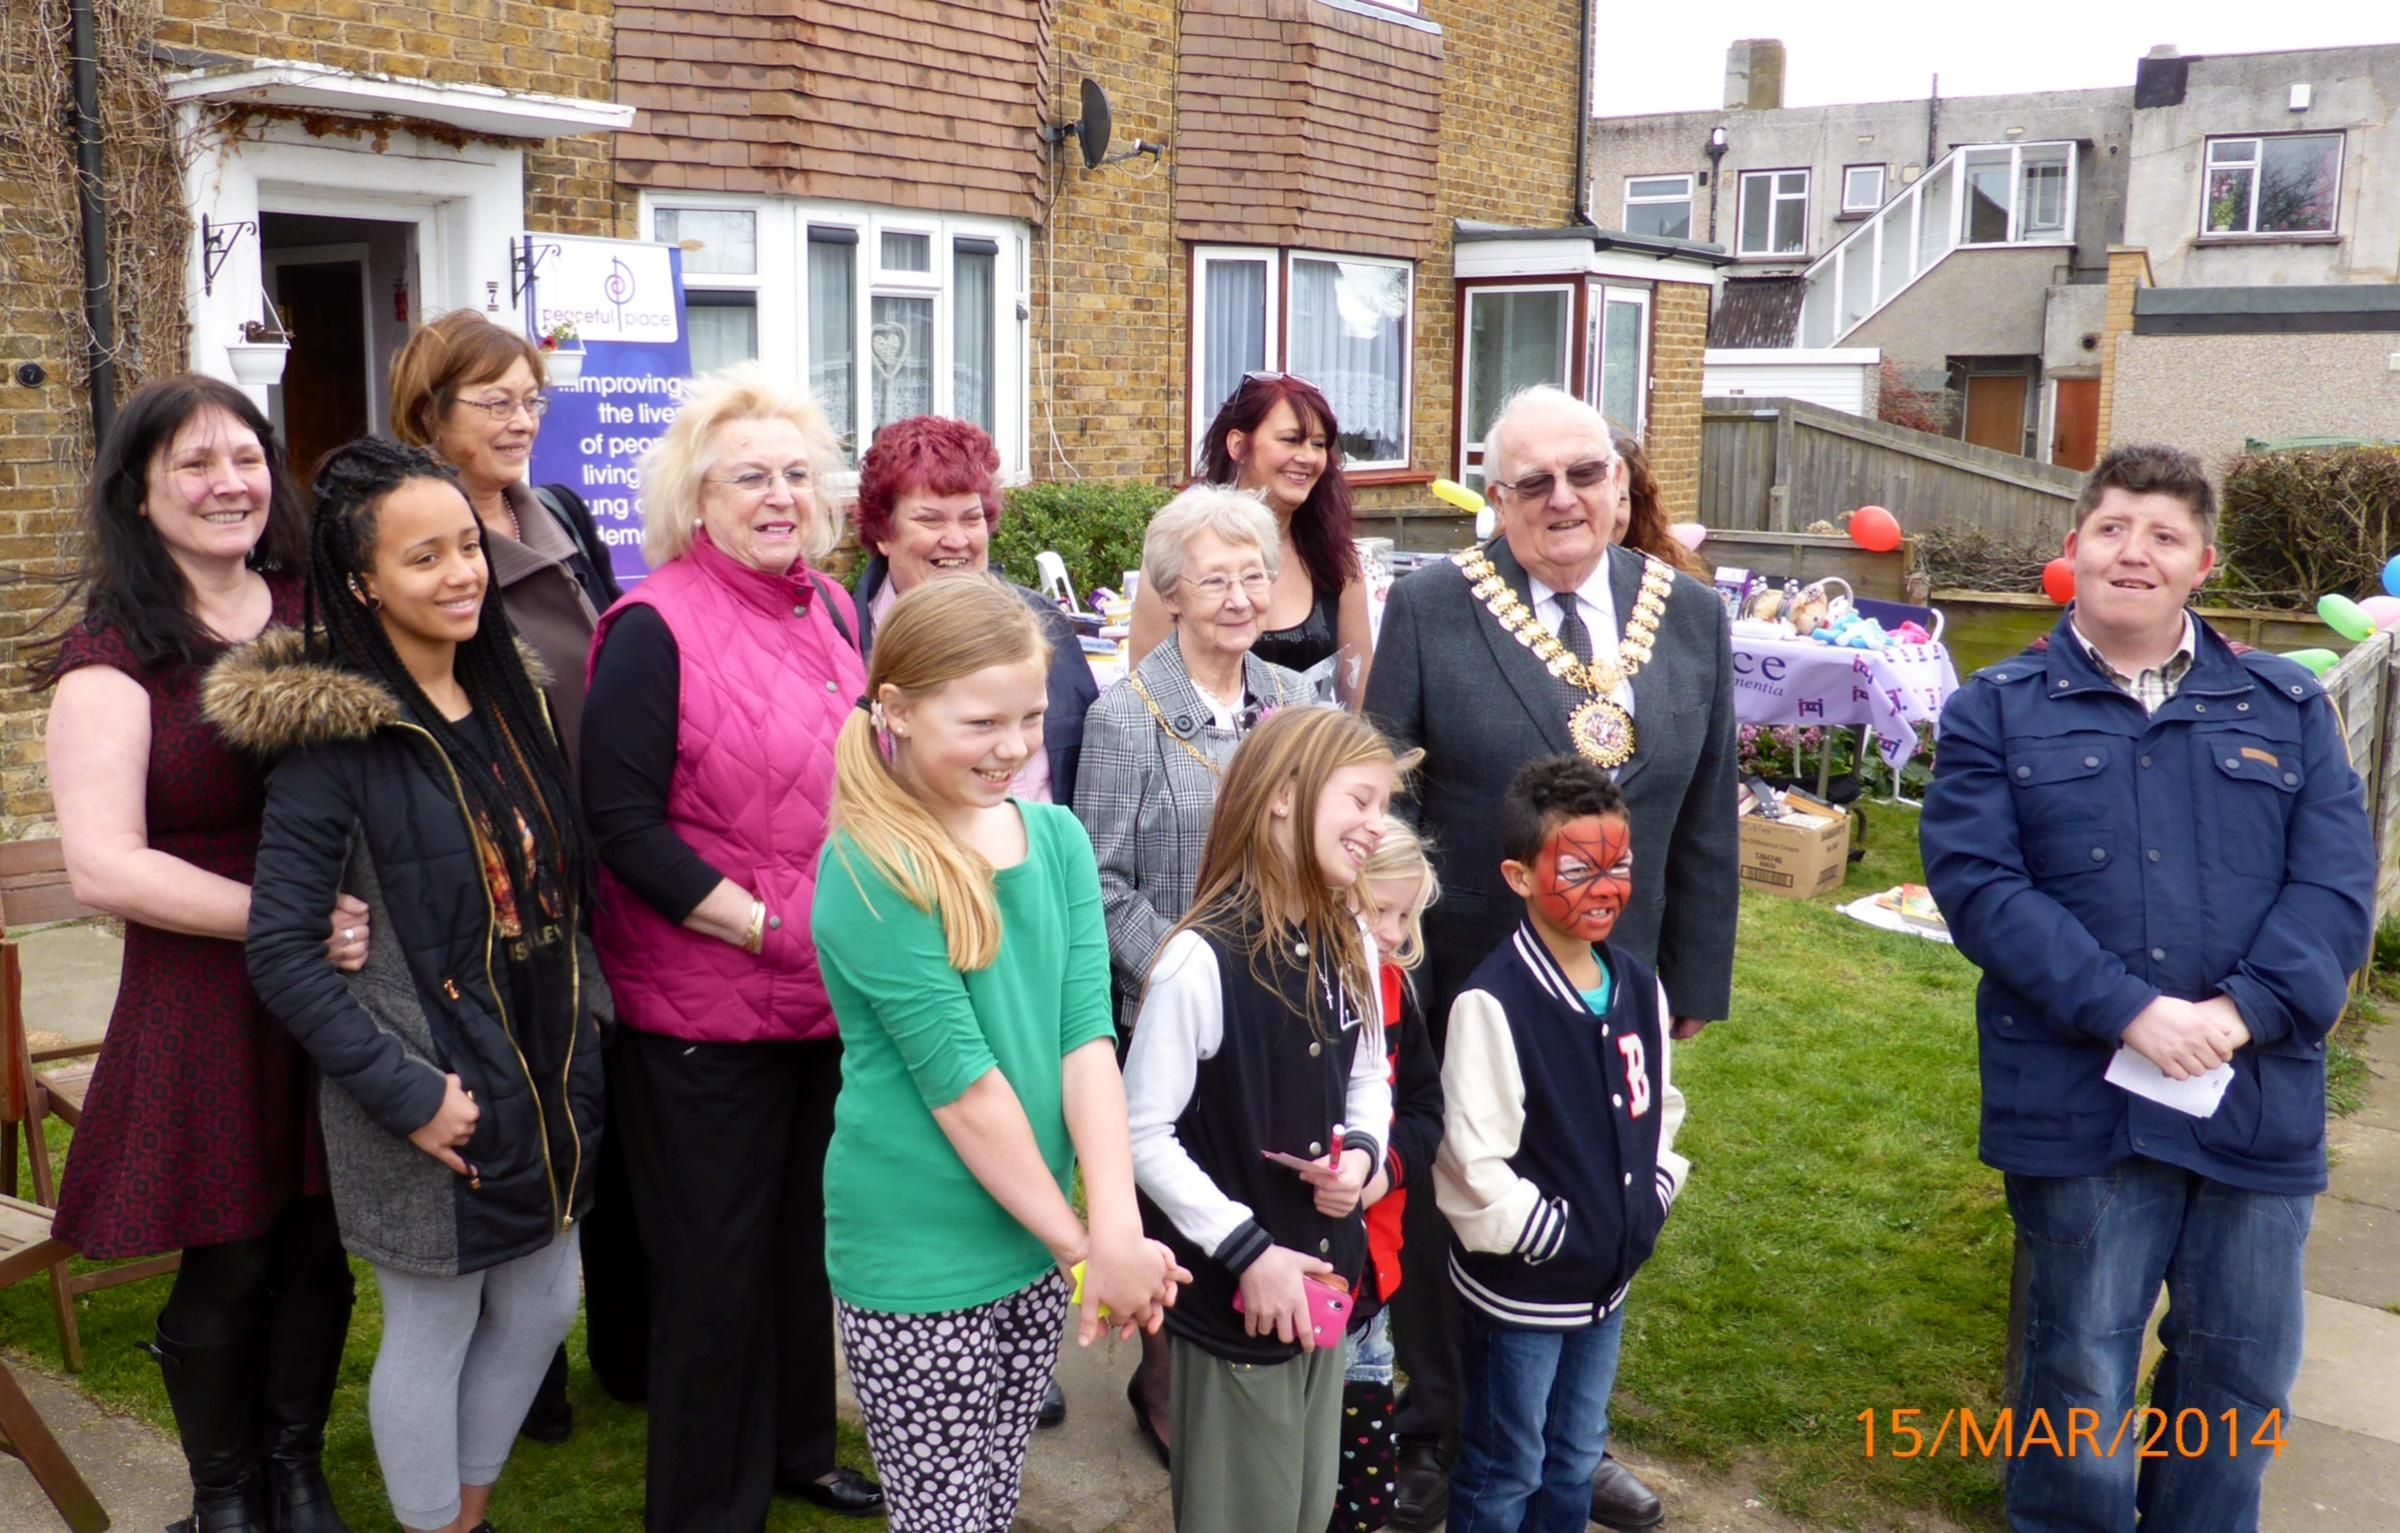 Fundraisers – Robbie Norton with Southend mayor Brian Kelly, the mayoress and others